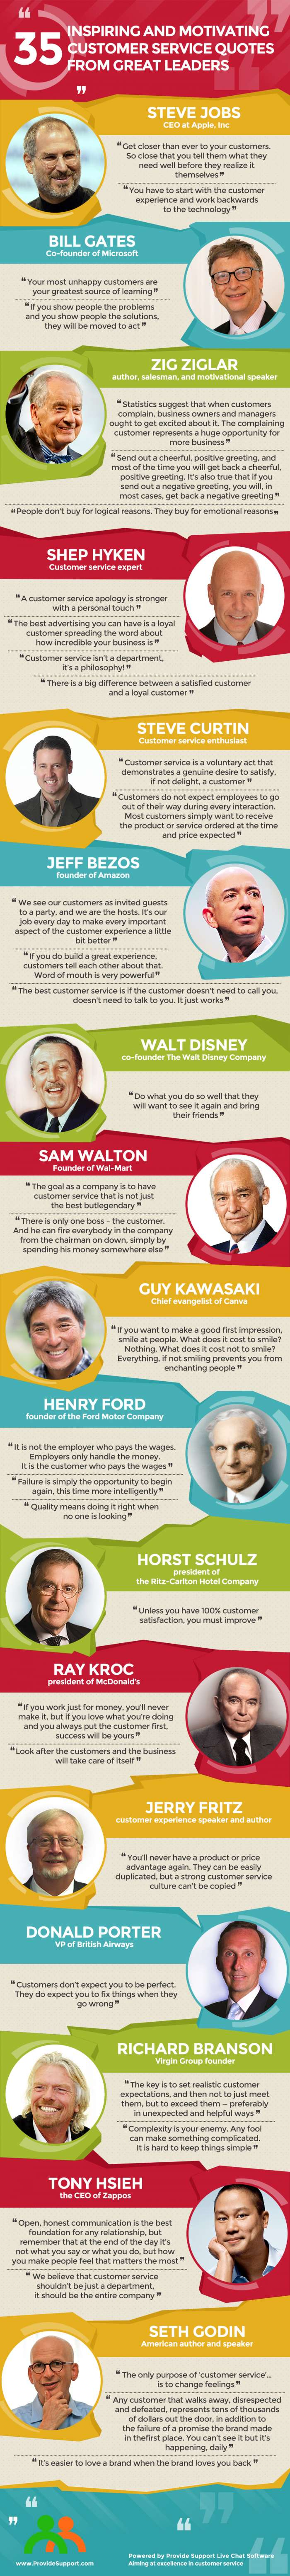 35-inspiring-customer-service-quotes-from-leaders_1.jpg